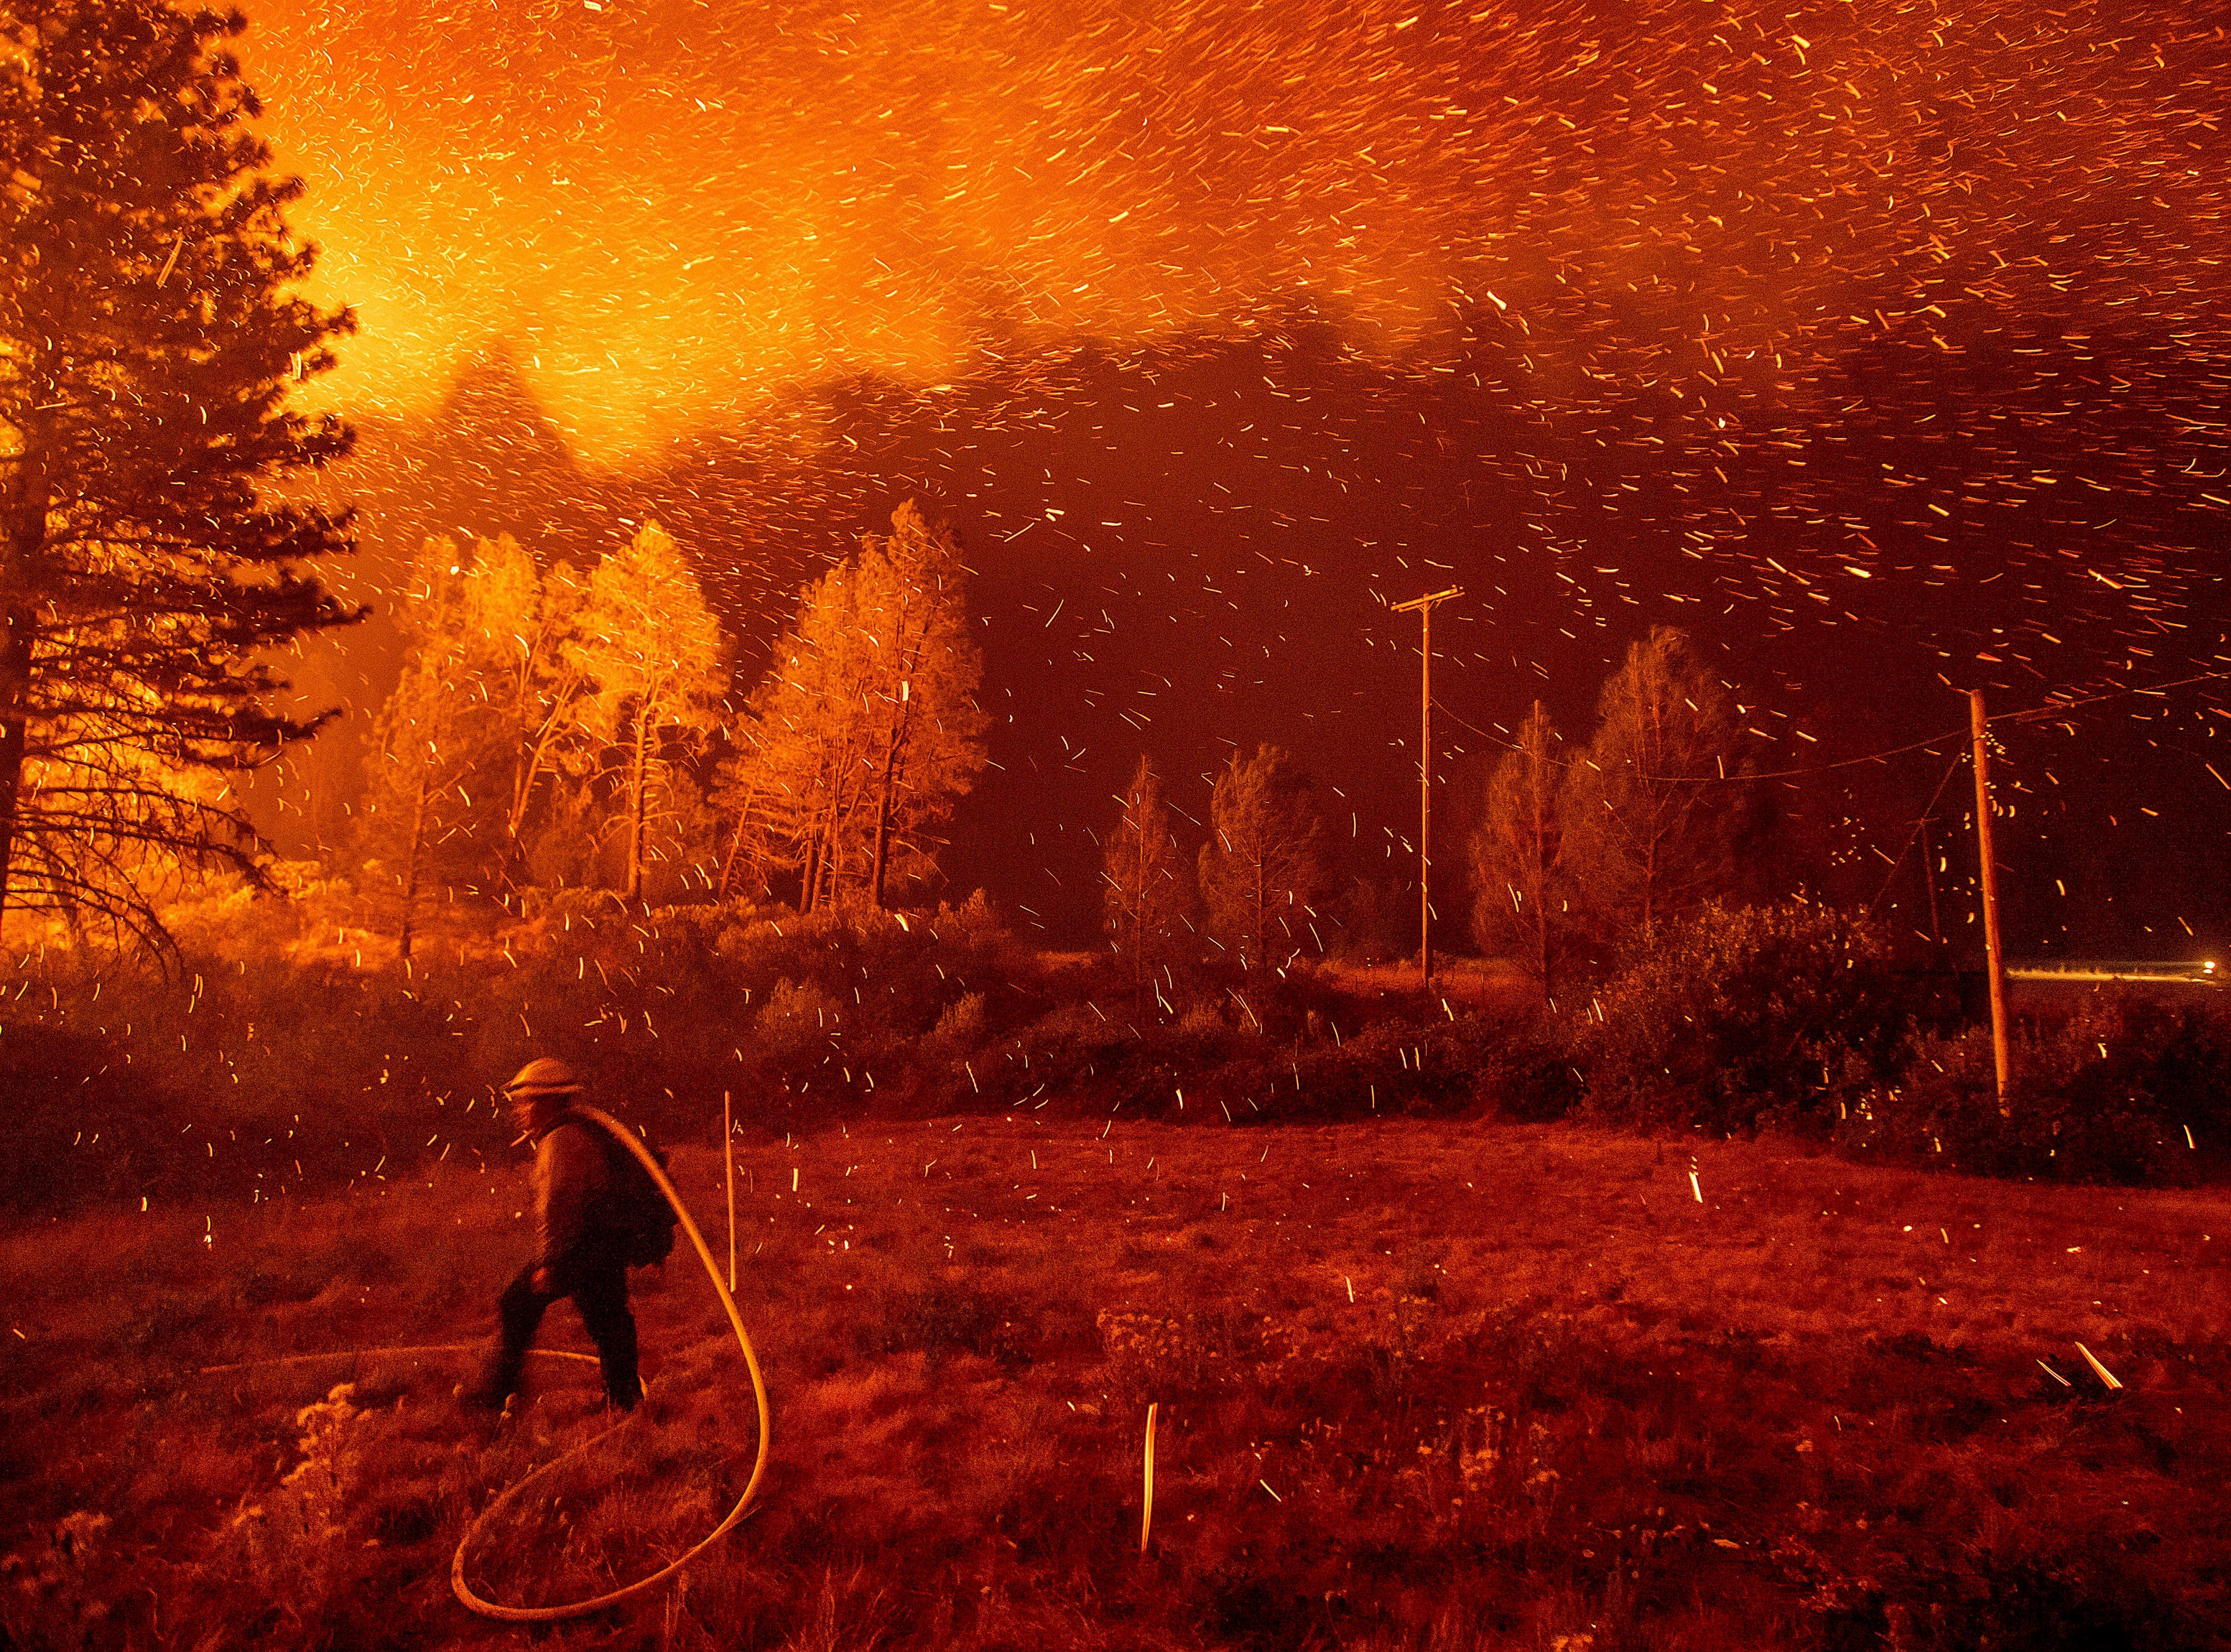 Embers fly above a firefighter hustling to control a backfire as the Delta Fire burns in the California's Shasta-Trinity National Forest on Sept. 6, 2018.